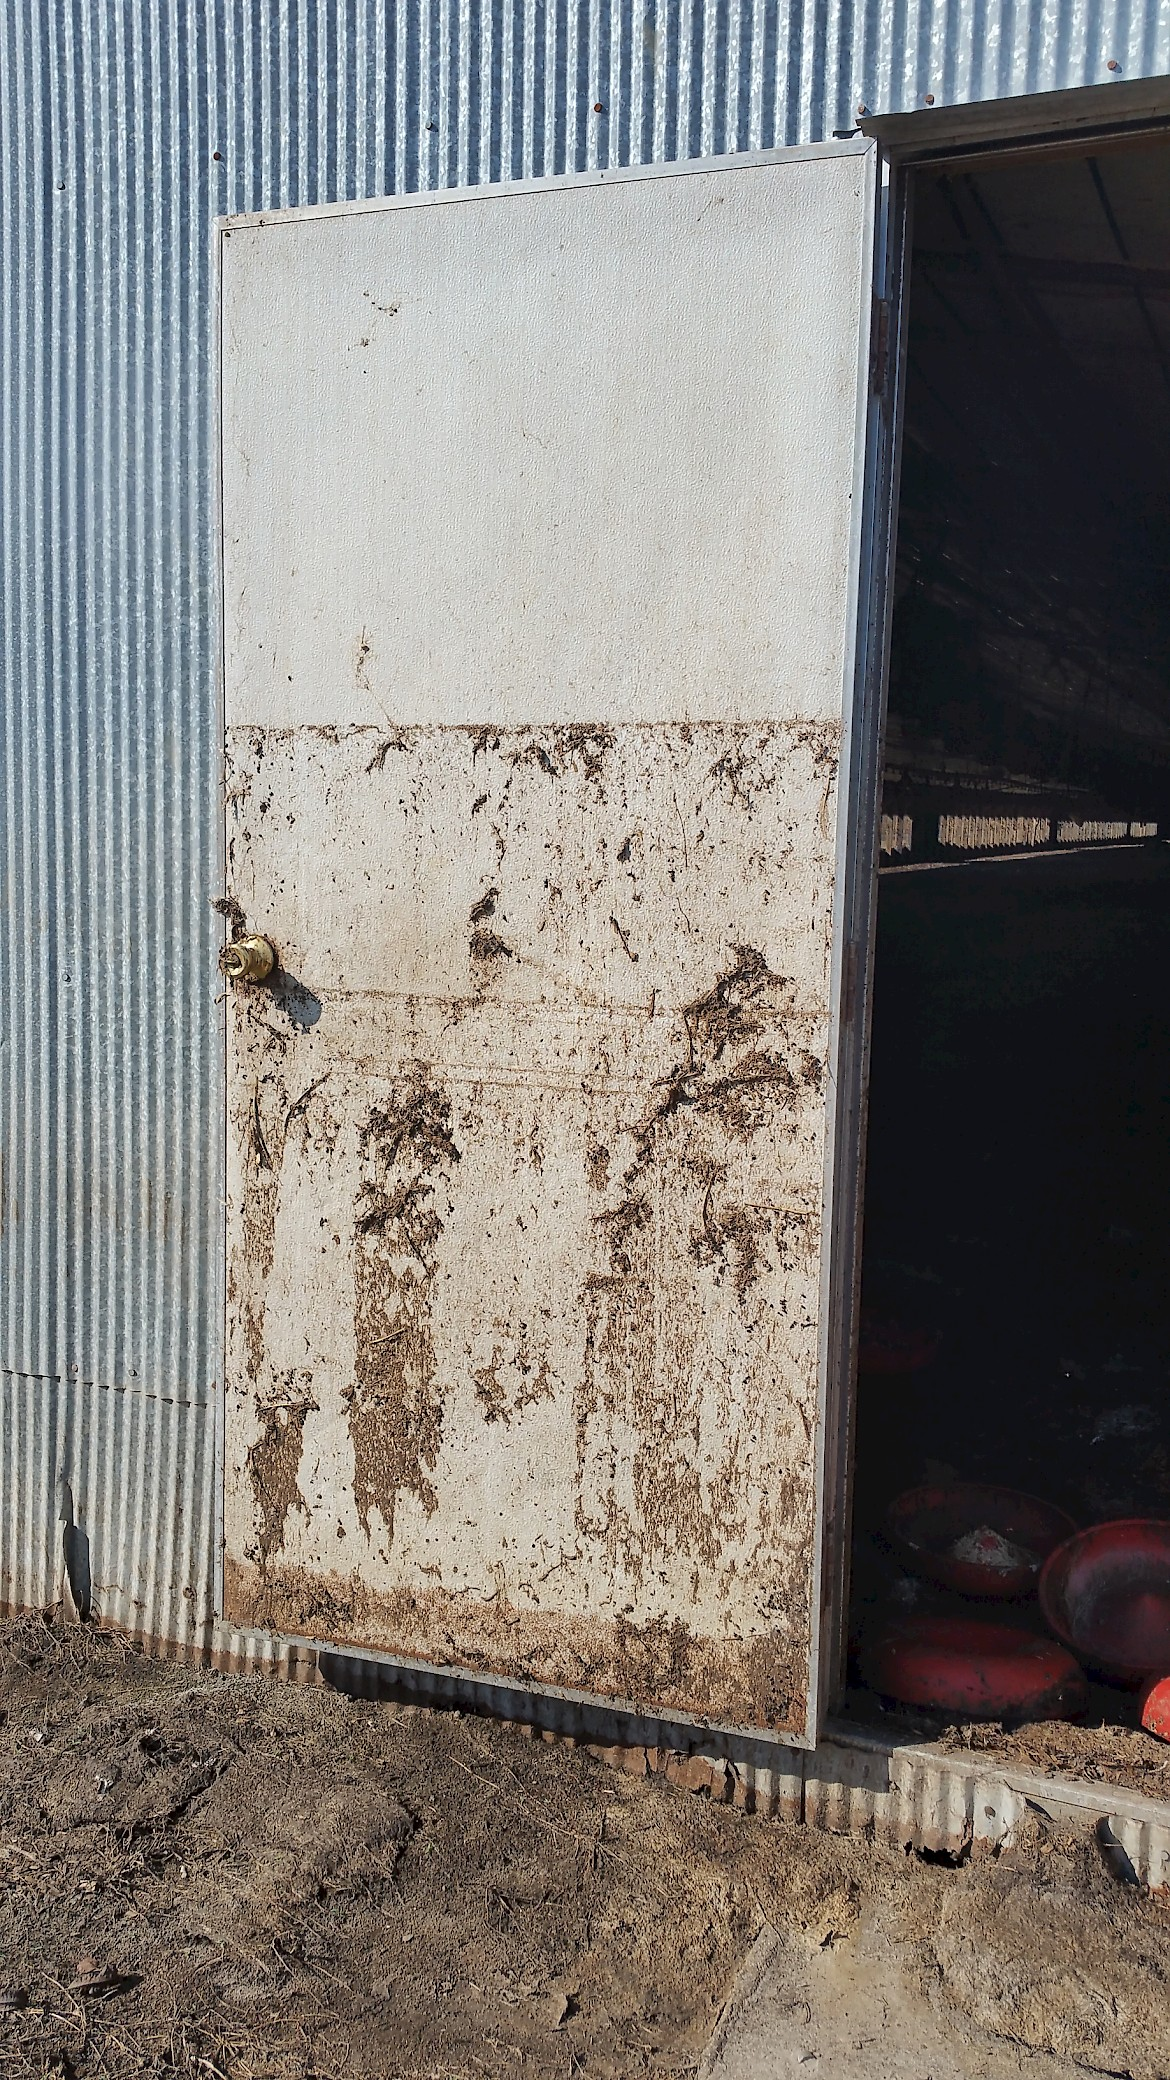 Level of floodwater seen on a poultry house door (Source: Gary Flory, 2018).